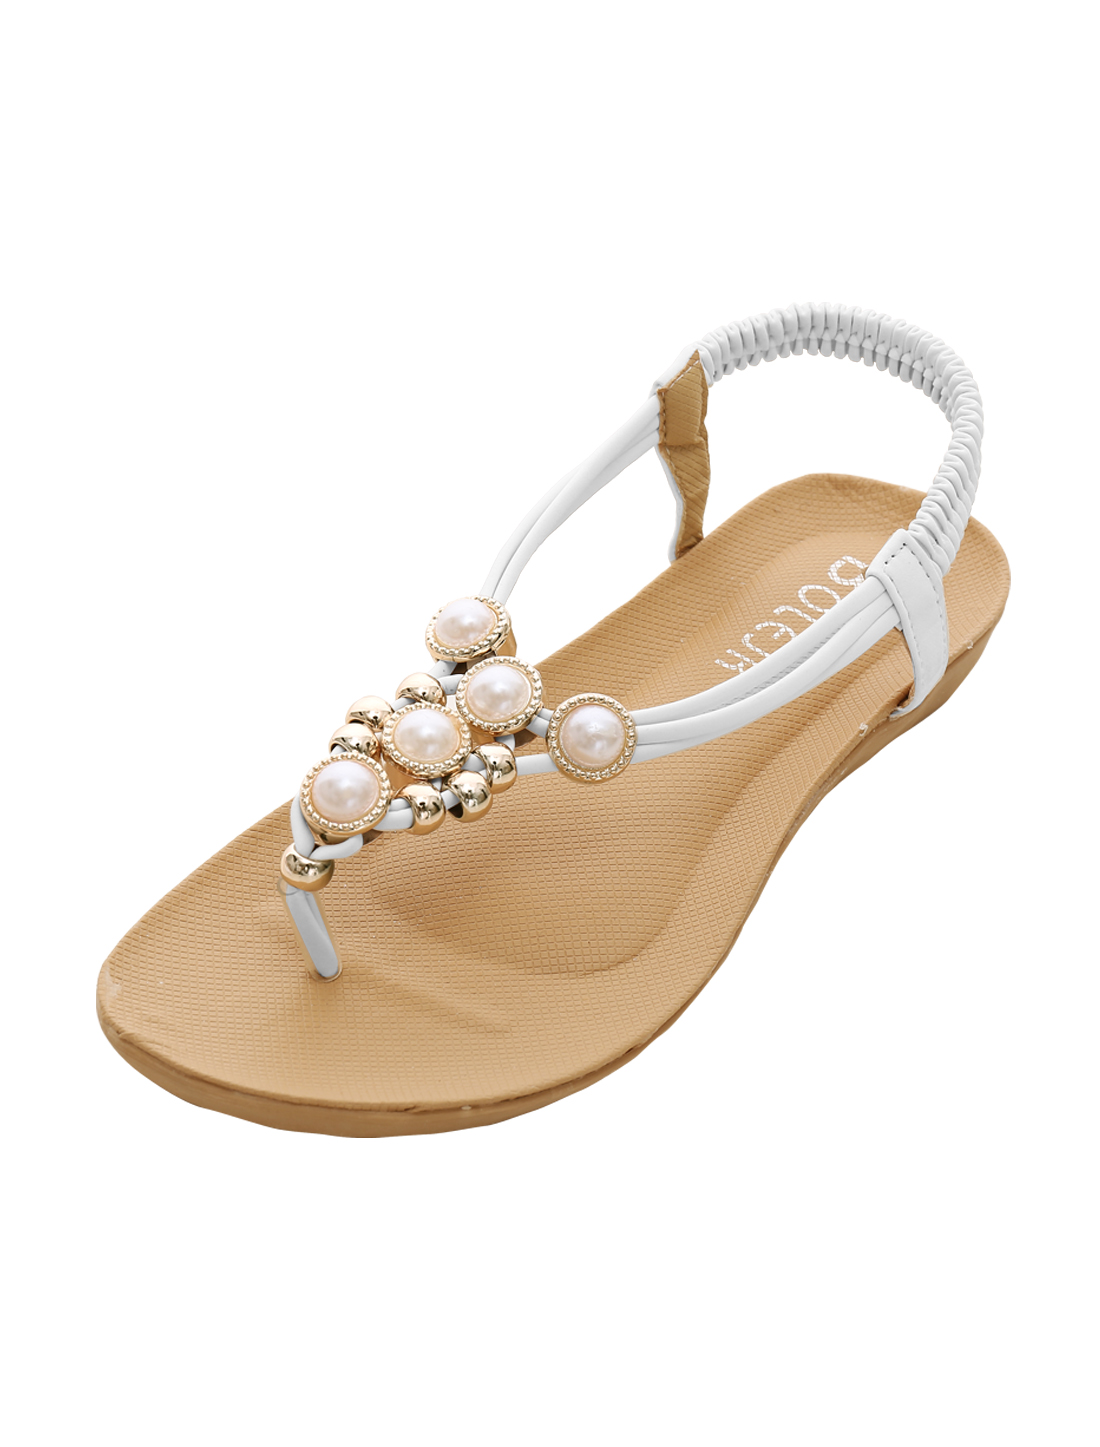 Ladies Elastic Ankle Strap Rhinestones Embellished Flat Sandals White US 5